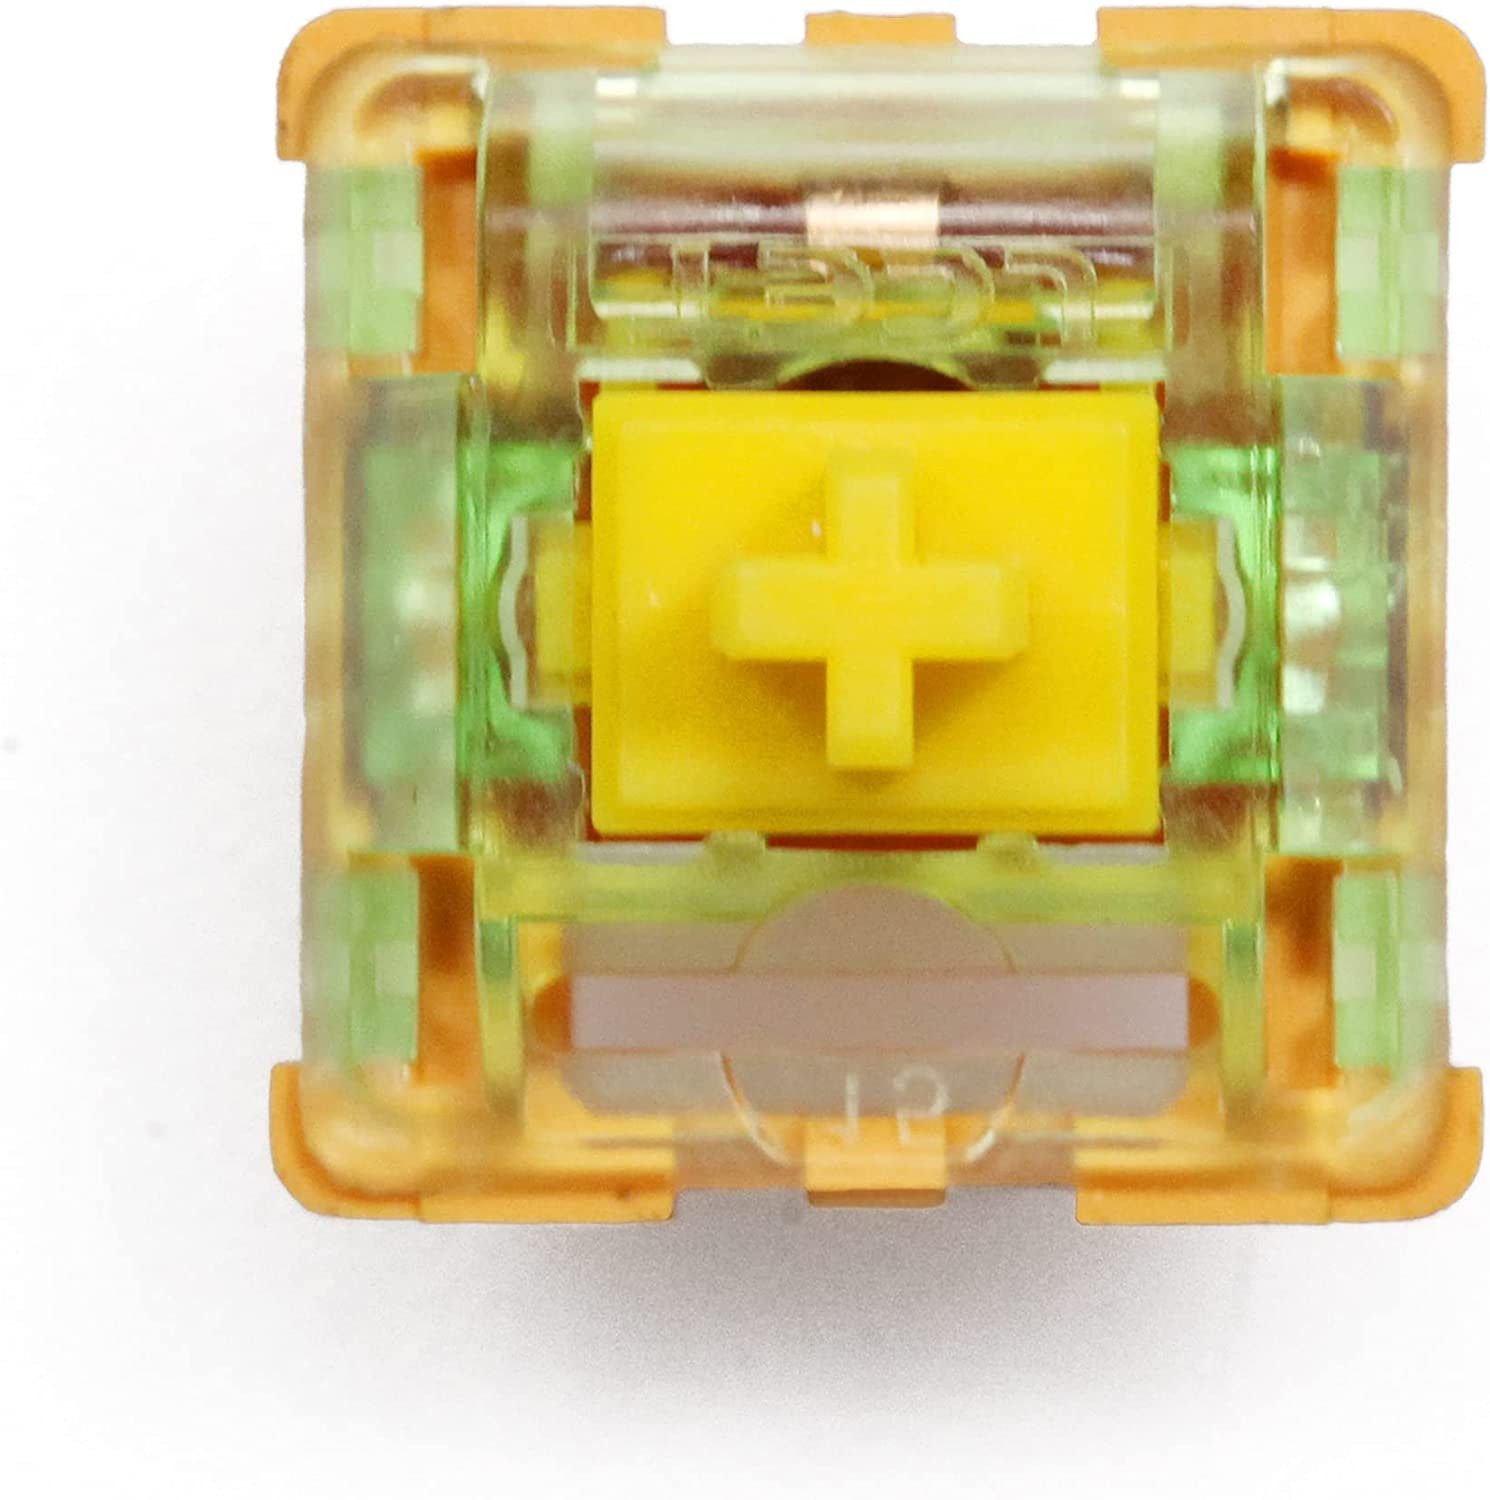 LCET Oasis switch